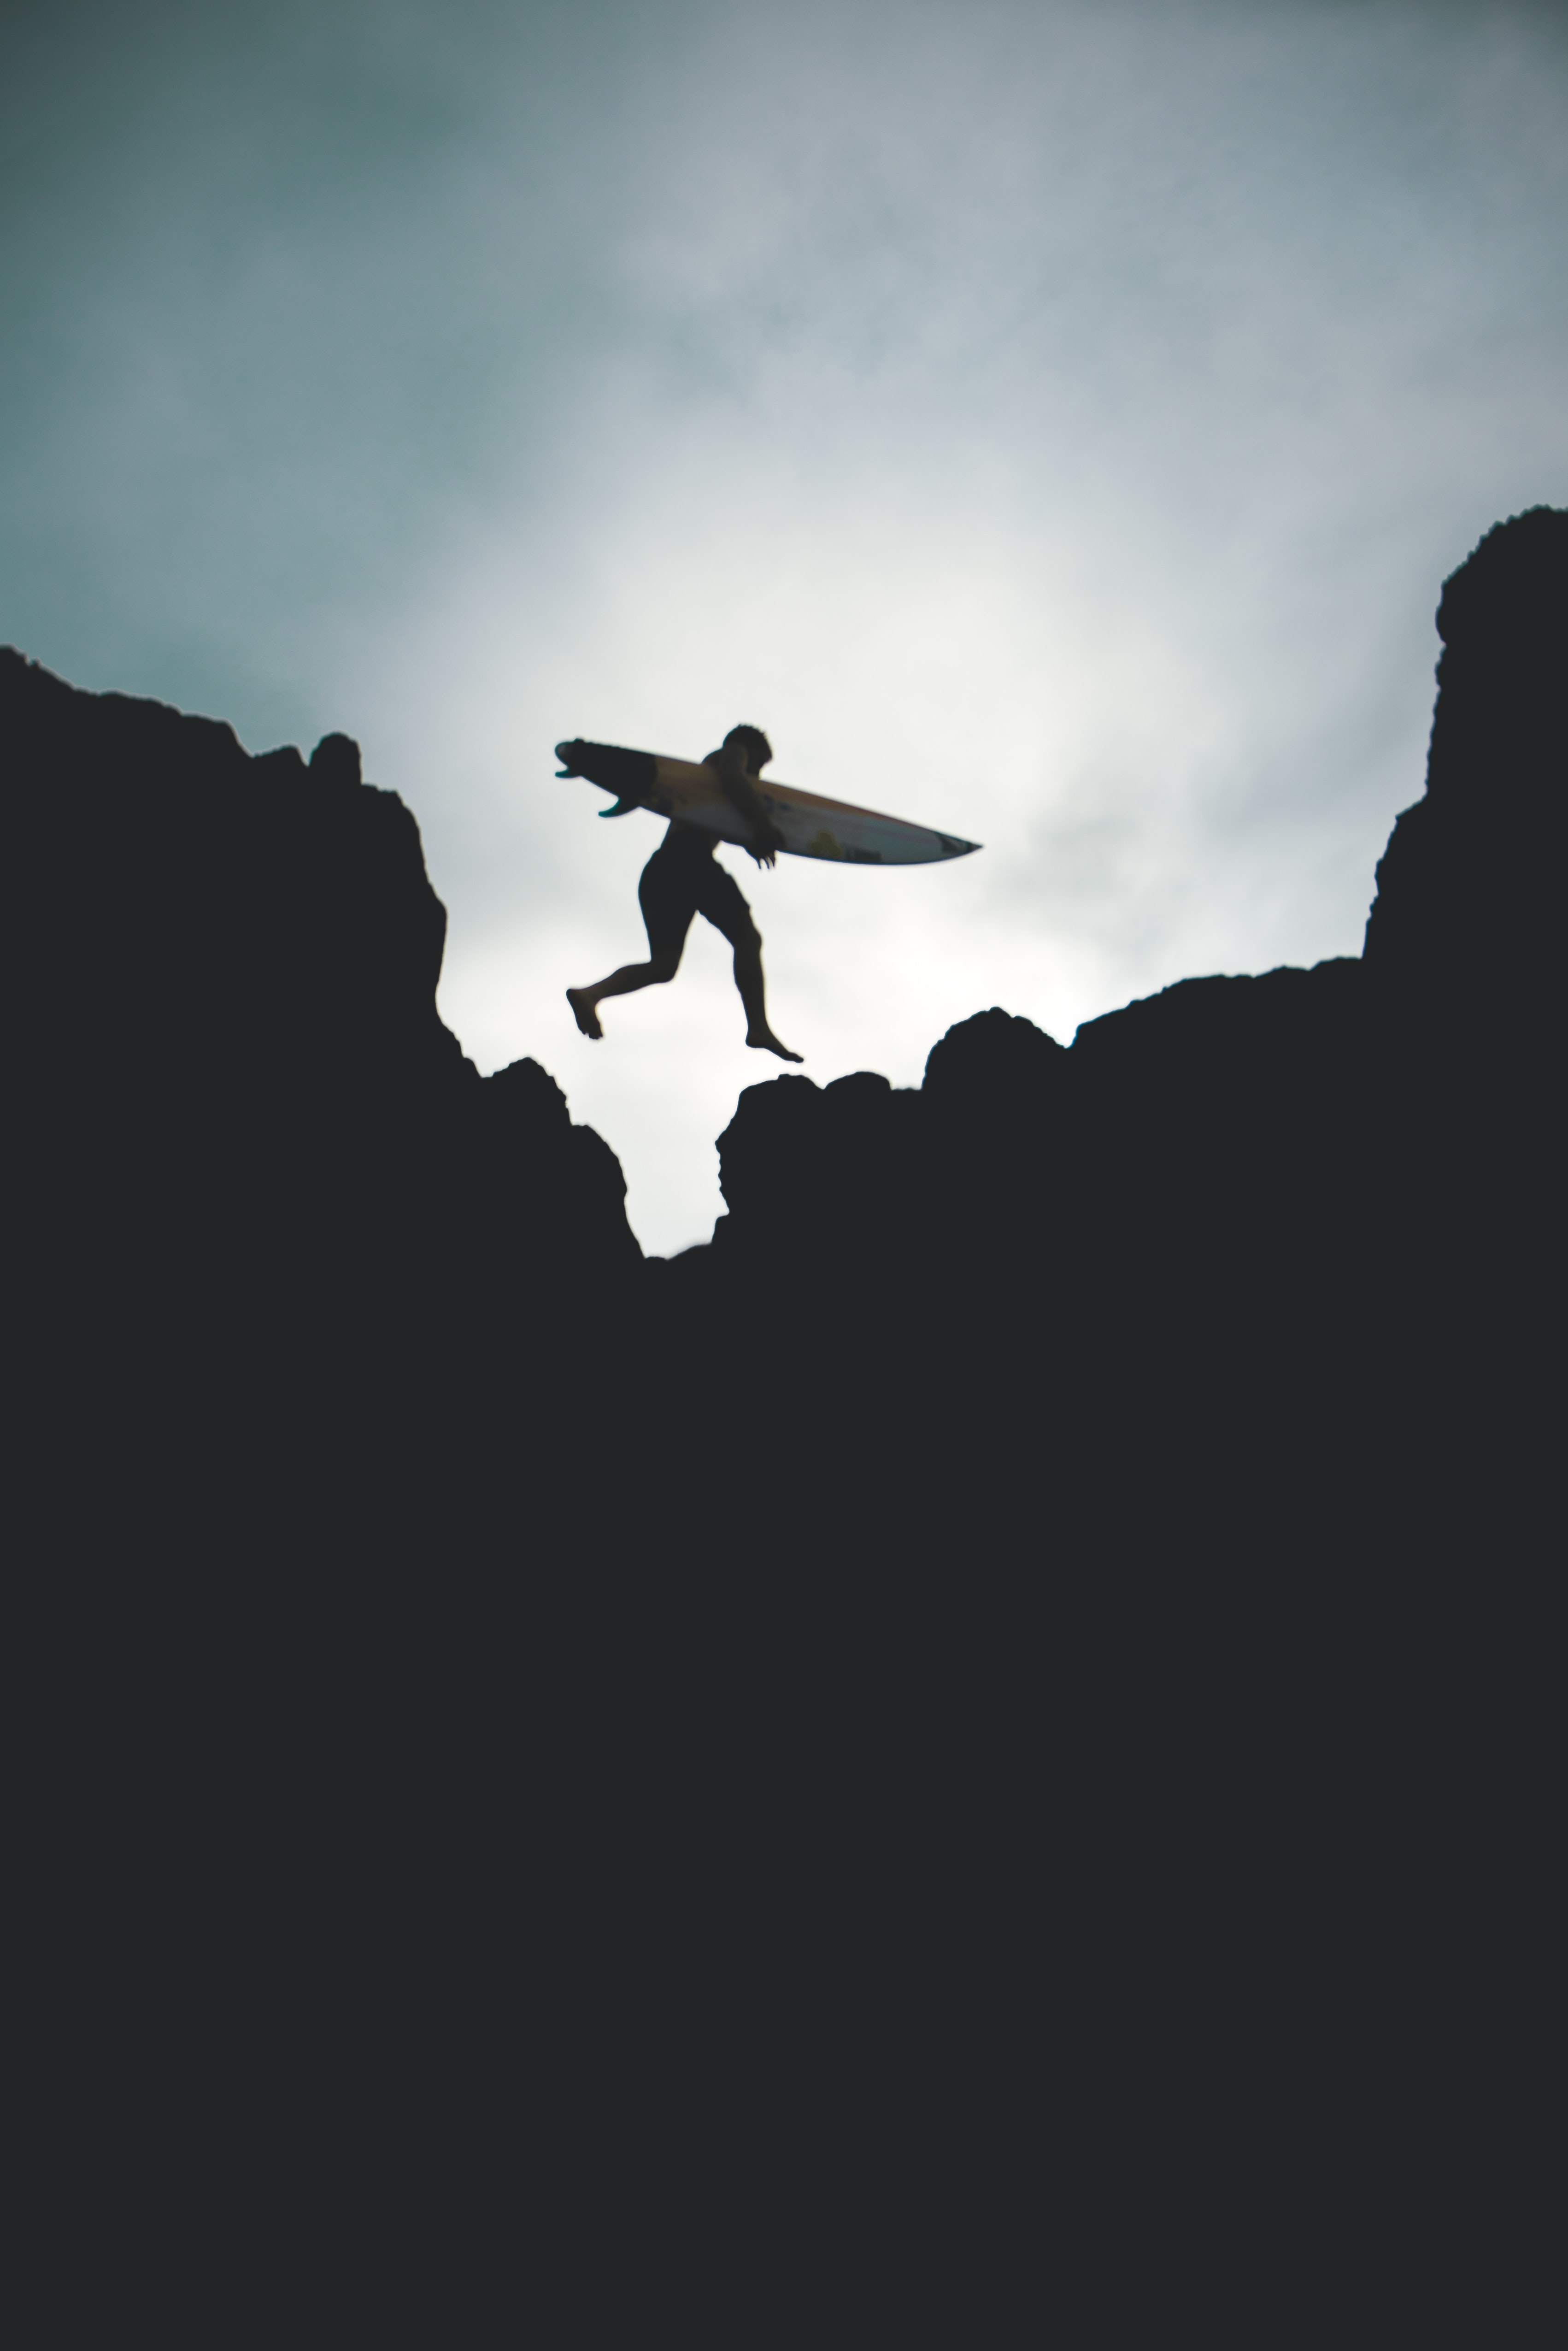 silhouette photo of man jumping on big rock holding surfboard